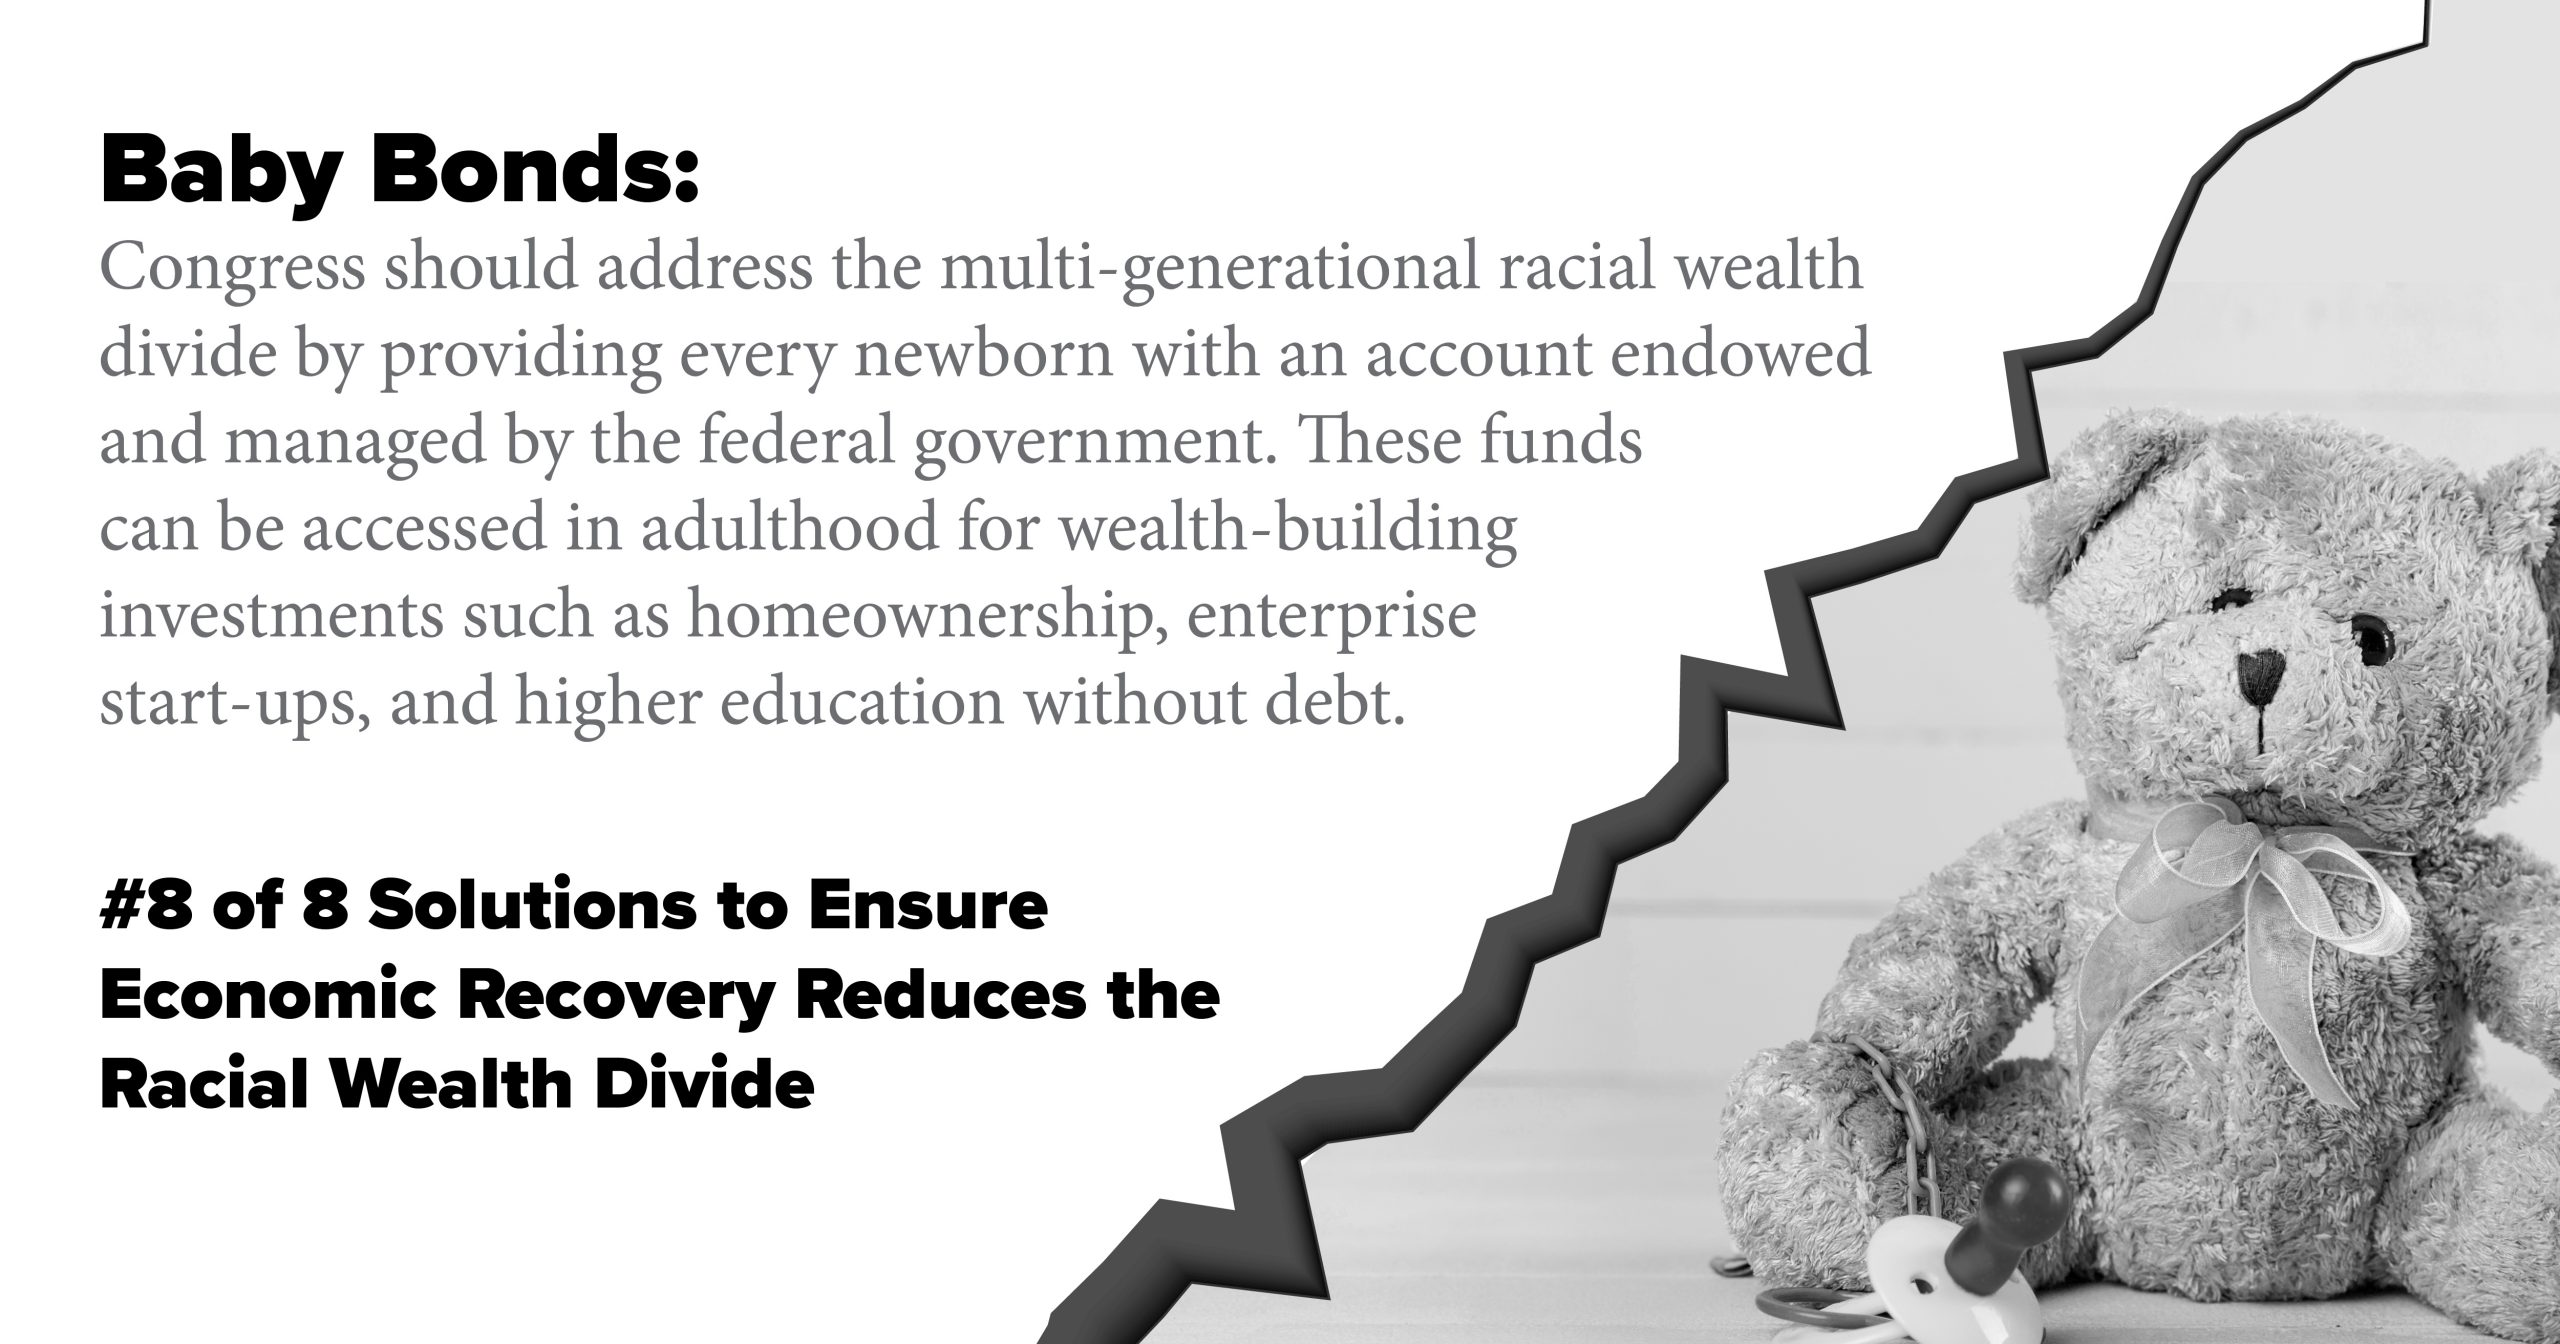 Baby Bonds. Congress should address the multi-generational racial wealth divide by providing every newborn with an account endowed and managed by the federal government. These funds can be accessed in adulthood for wealth-building investments such as homeownership, enterprise start-ups, and higher education without debt.